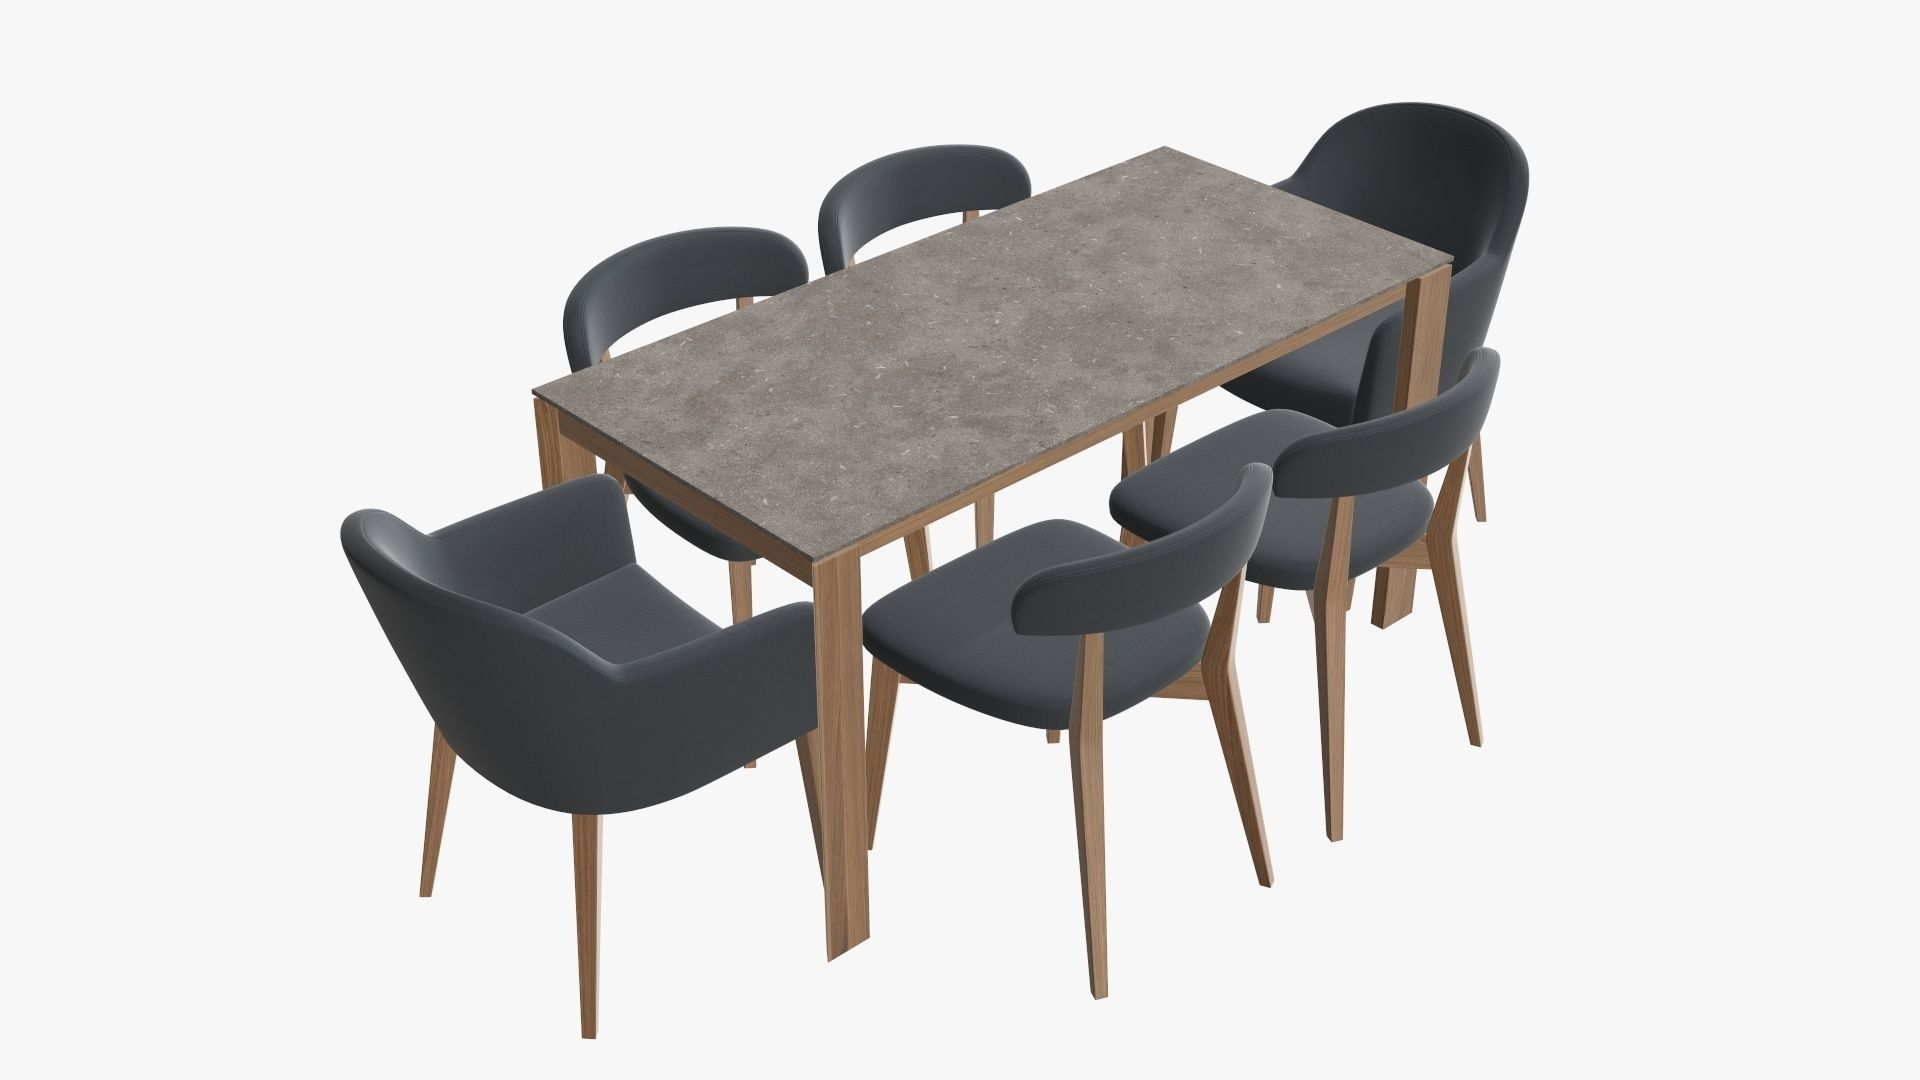 3d Model Dining Table With Chairs And Armchairs Cgtrader